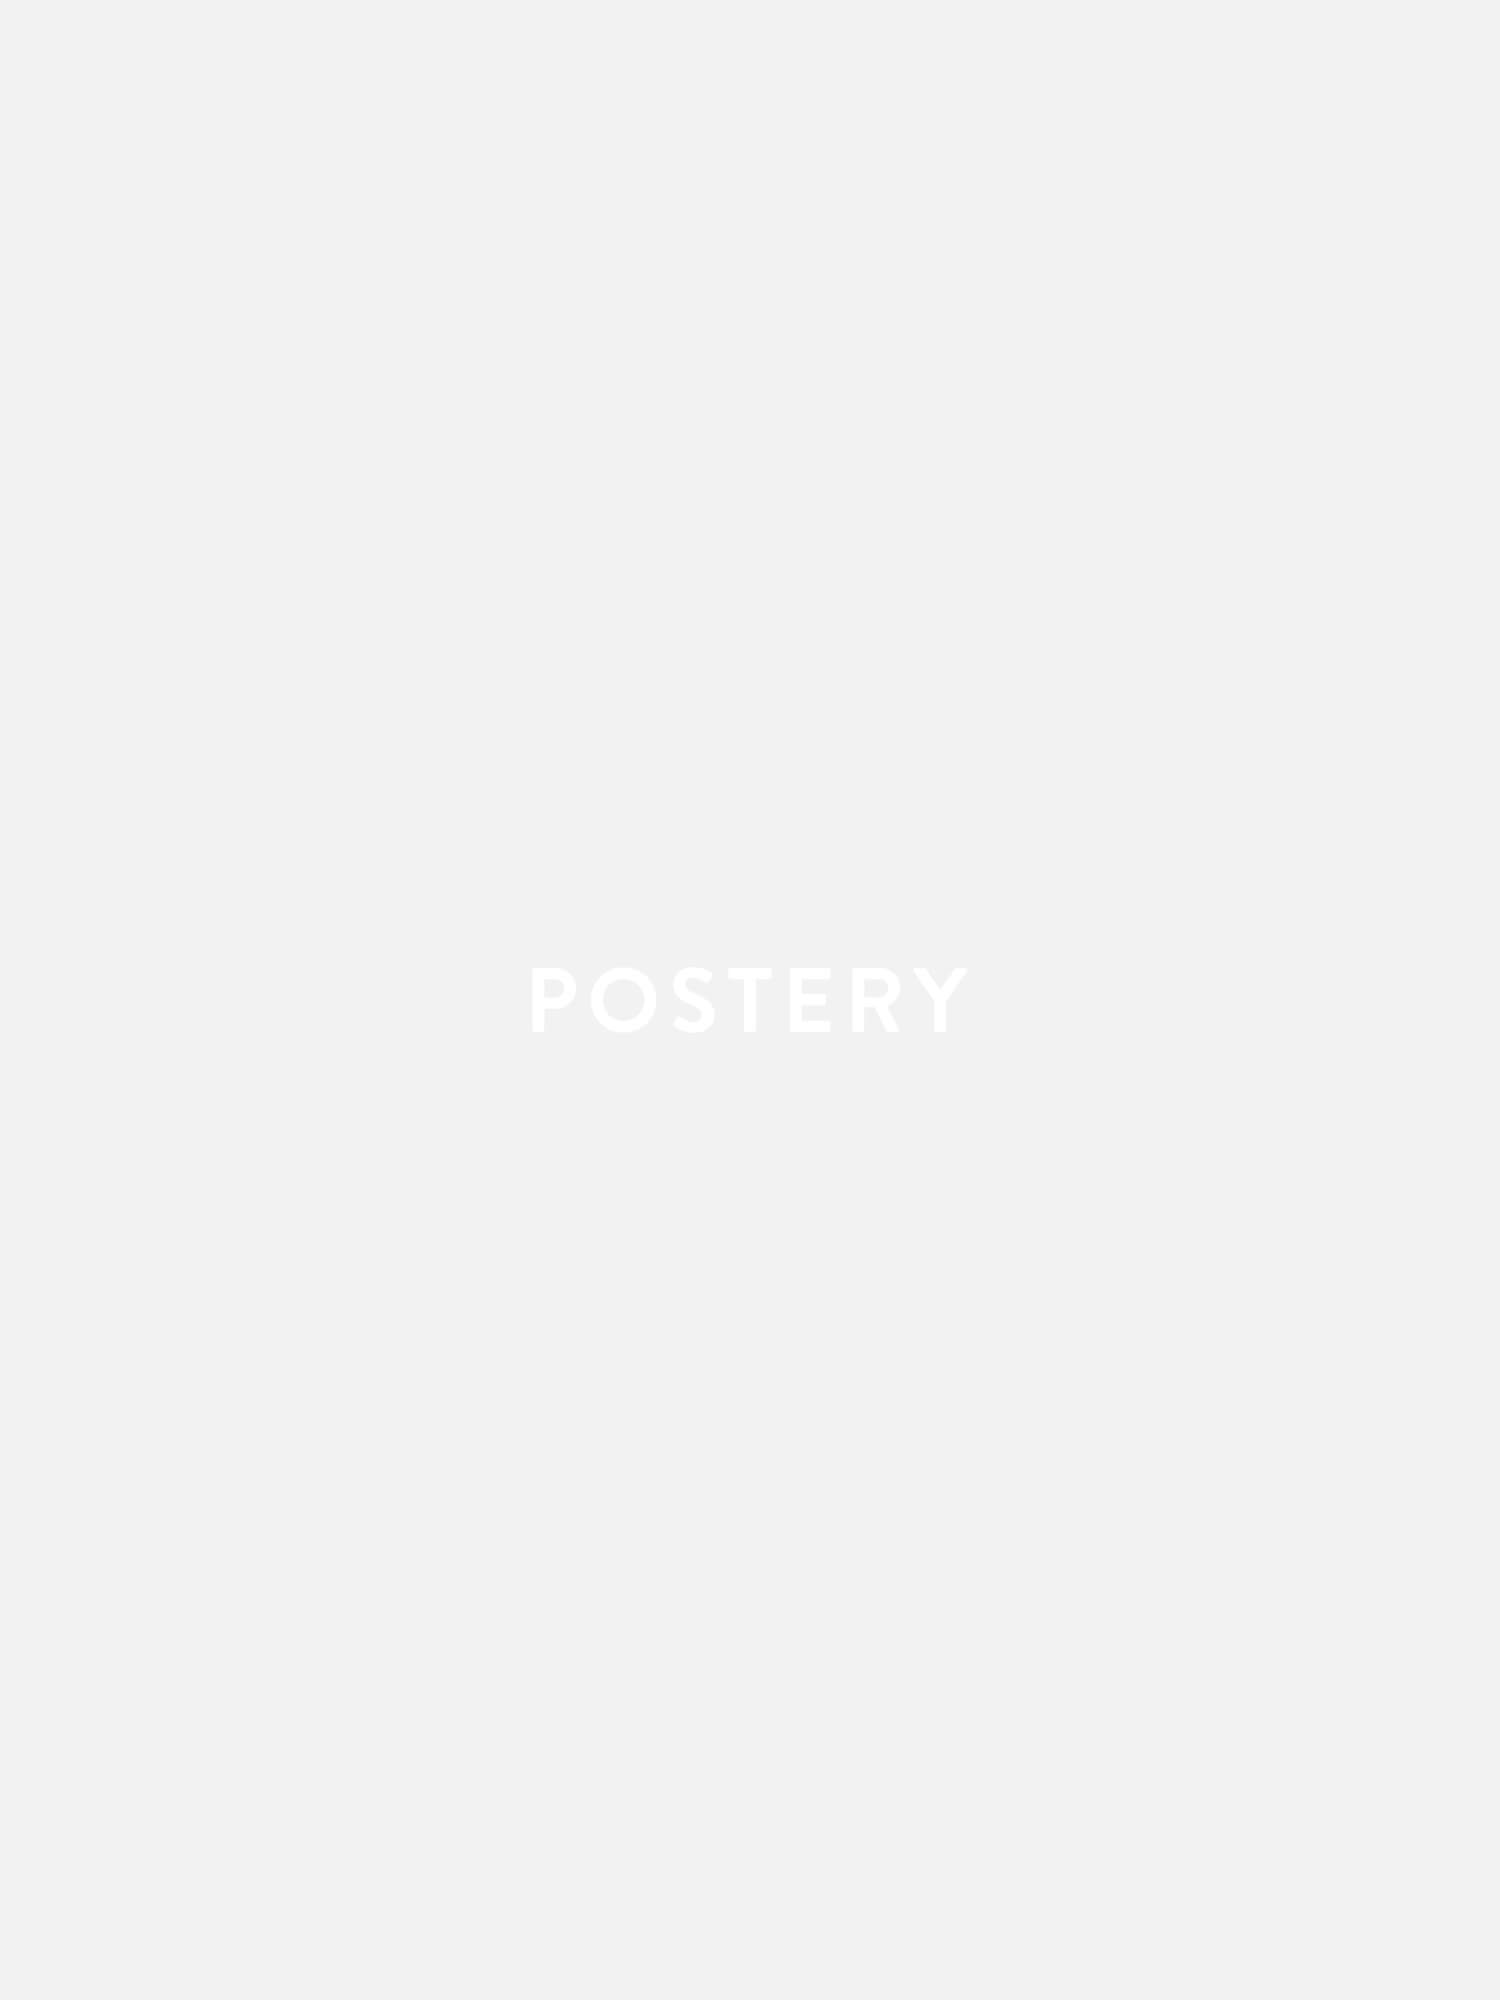 Harmonic Palm Leaves no.2 Poster